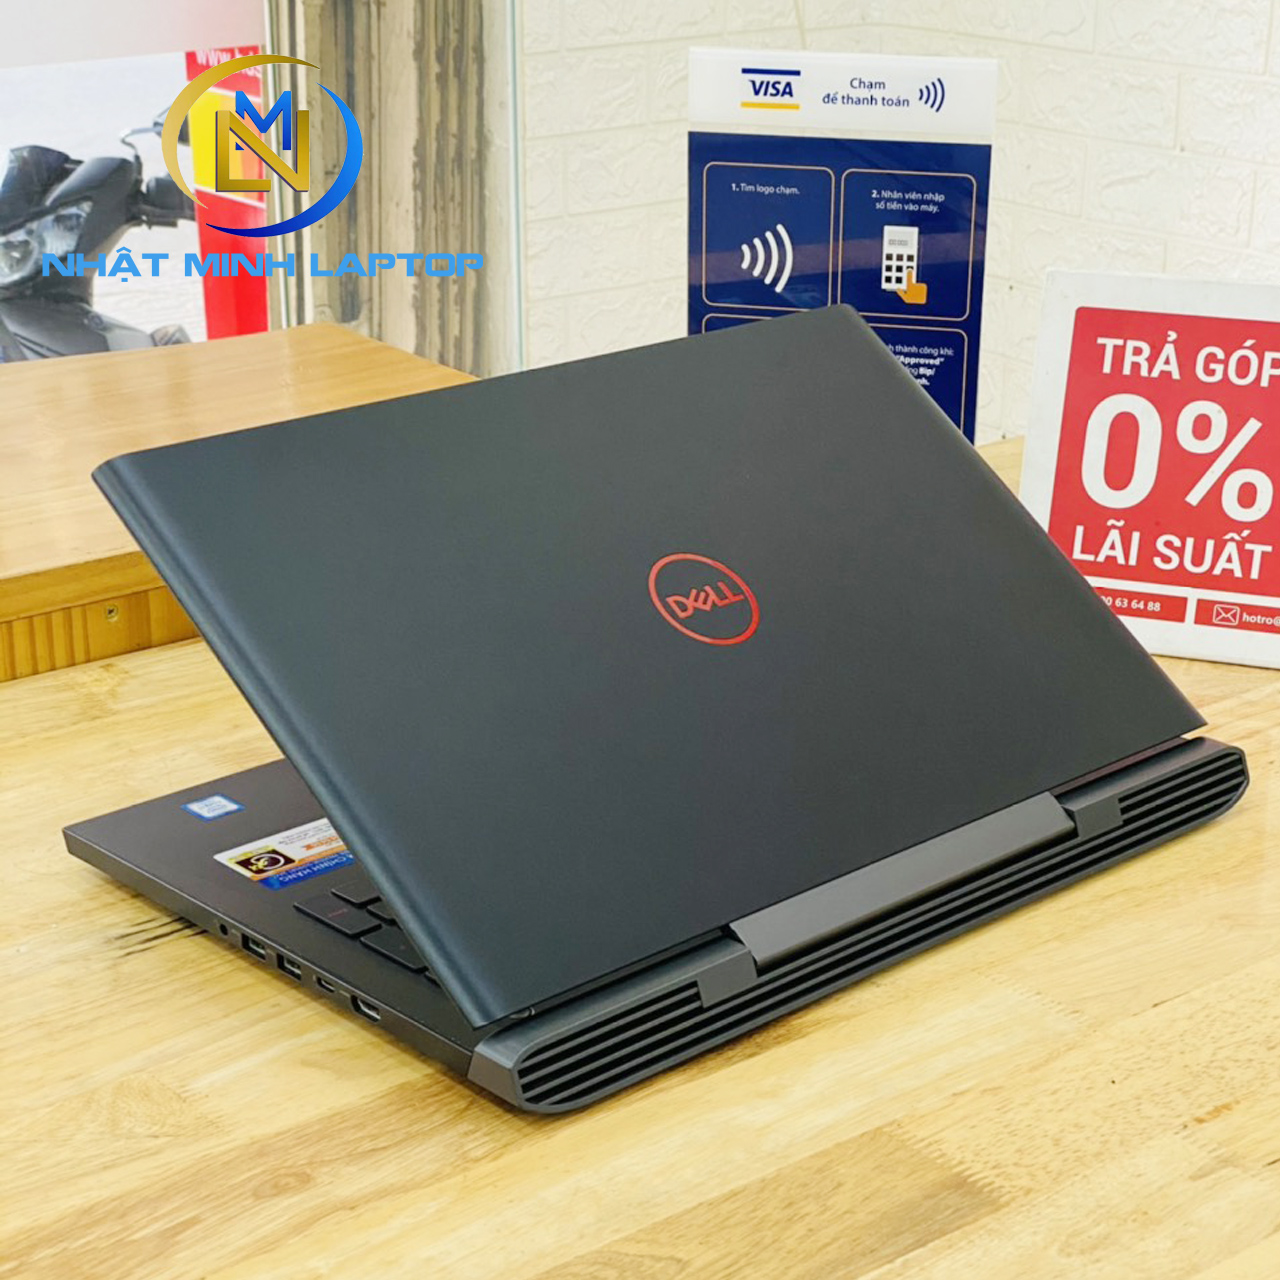 Dell Gaming 7577 i7-7700HQ Ram 8G SSD 128G+HDD 1TB Nvidia GTX 1050ti 15.6 inch Full HD Ips